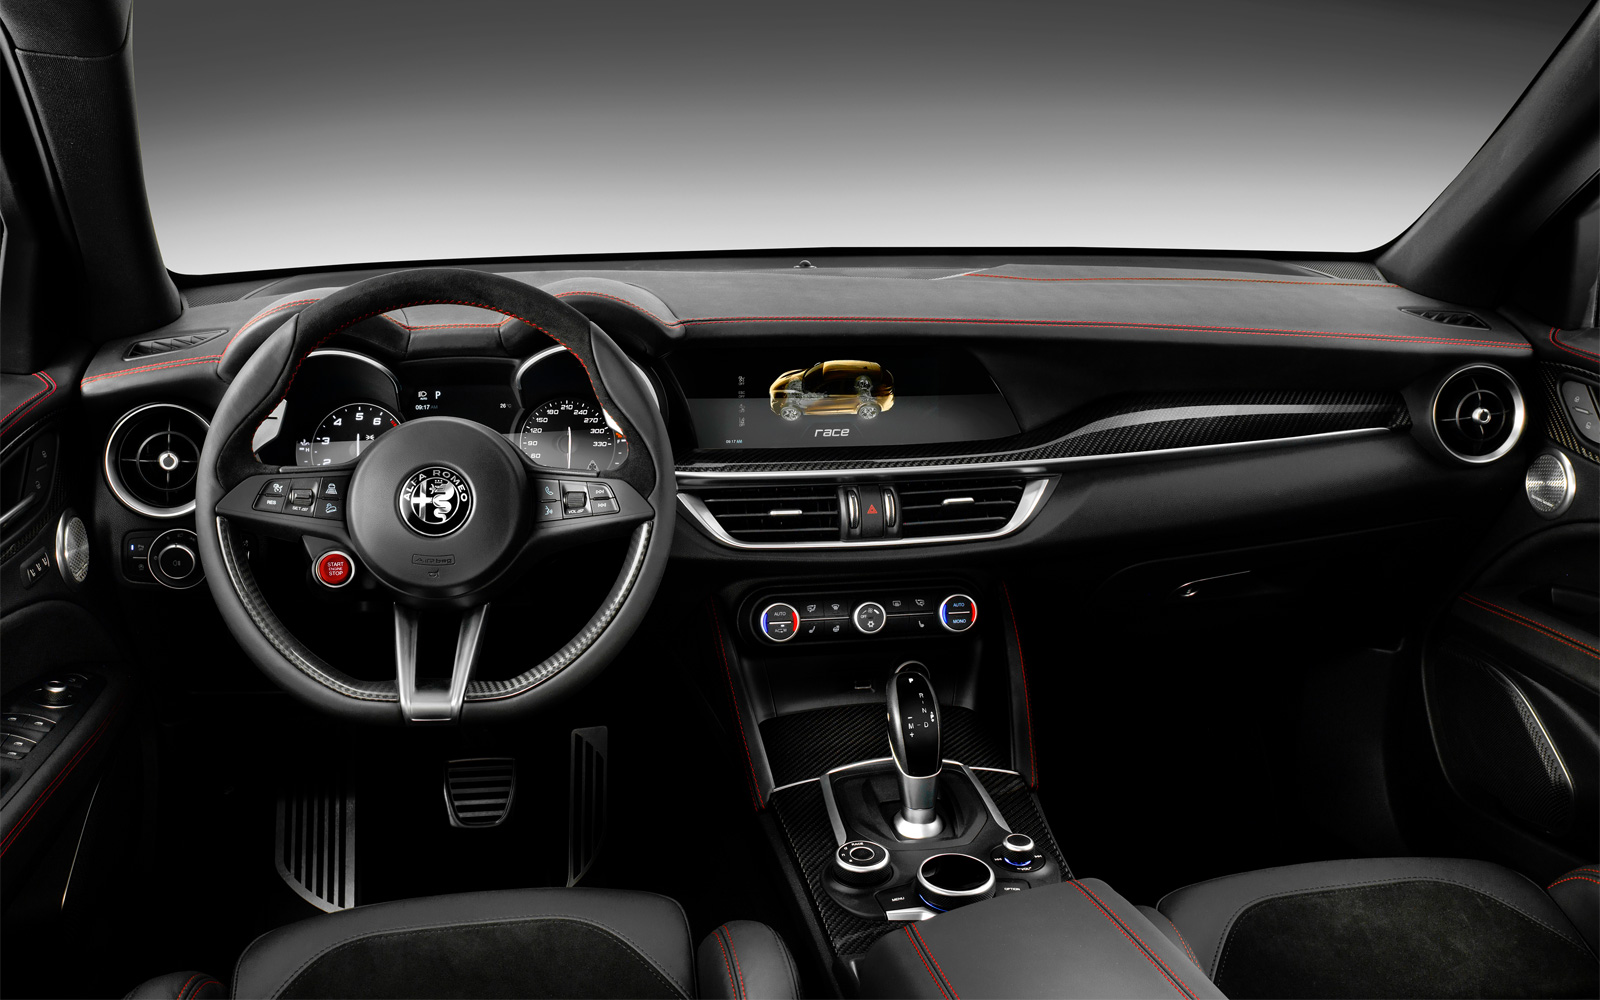 All new Alfa Romeo cars will only have a necessary minimum of screens inside, CEO Jean-Philippe Imparato said in an interview with a French radio station.